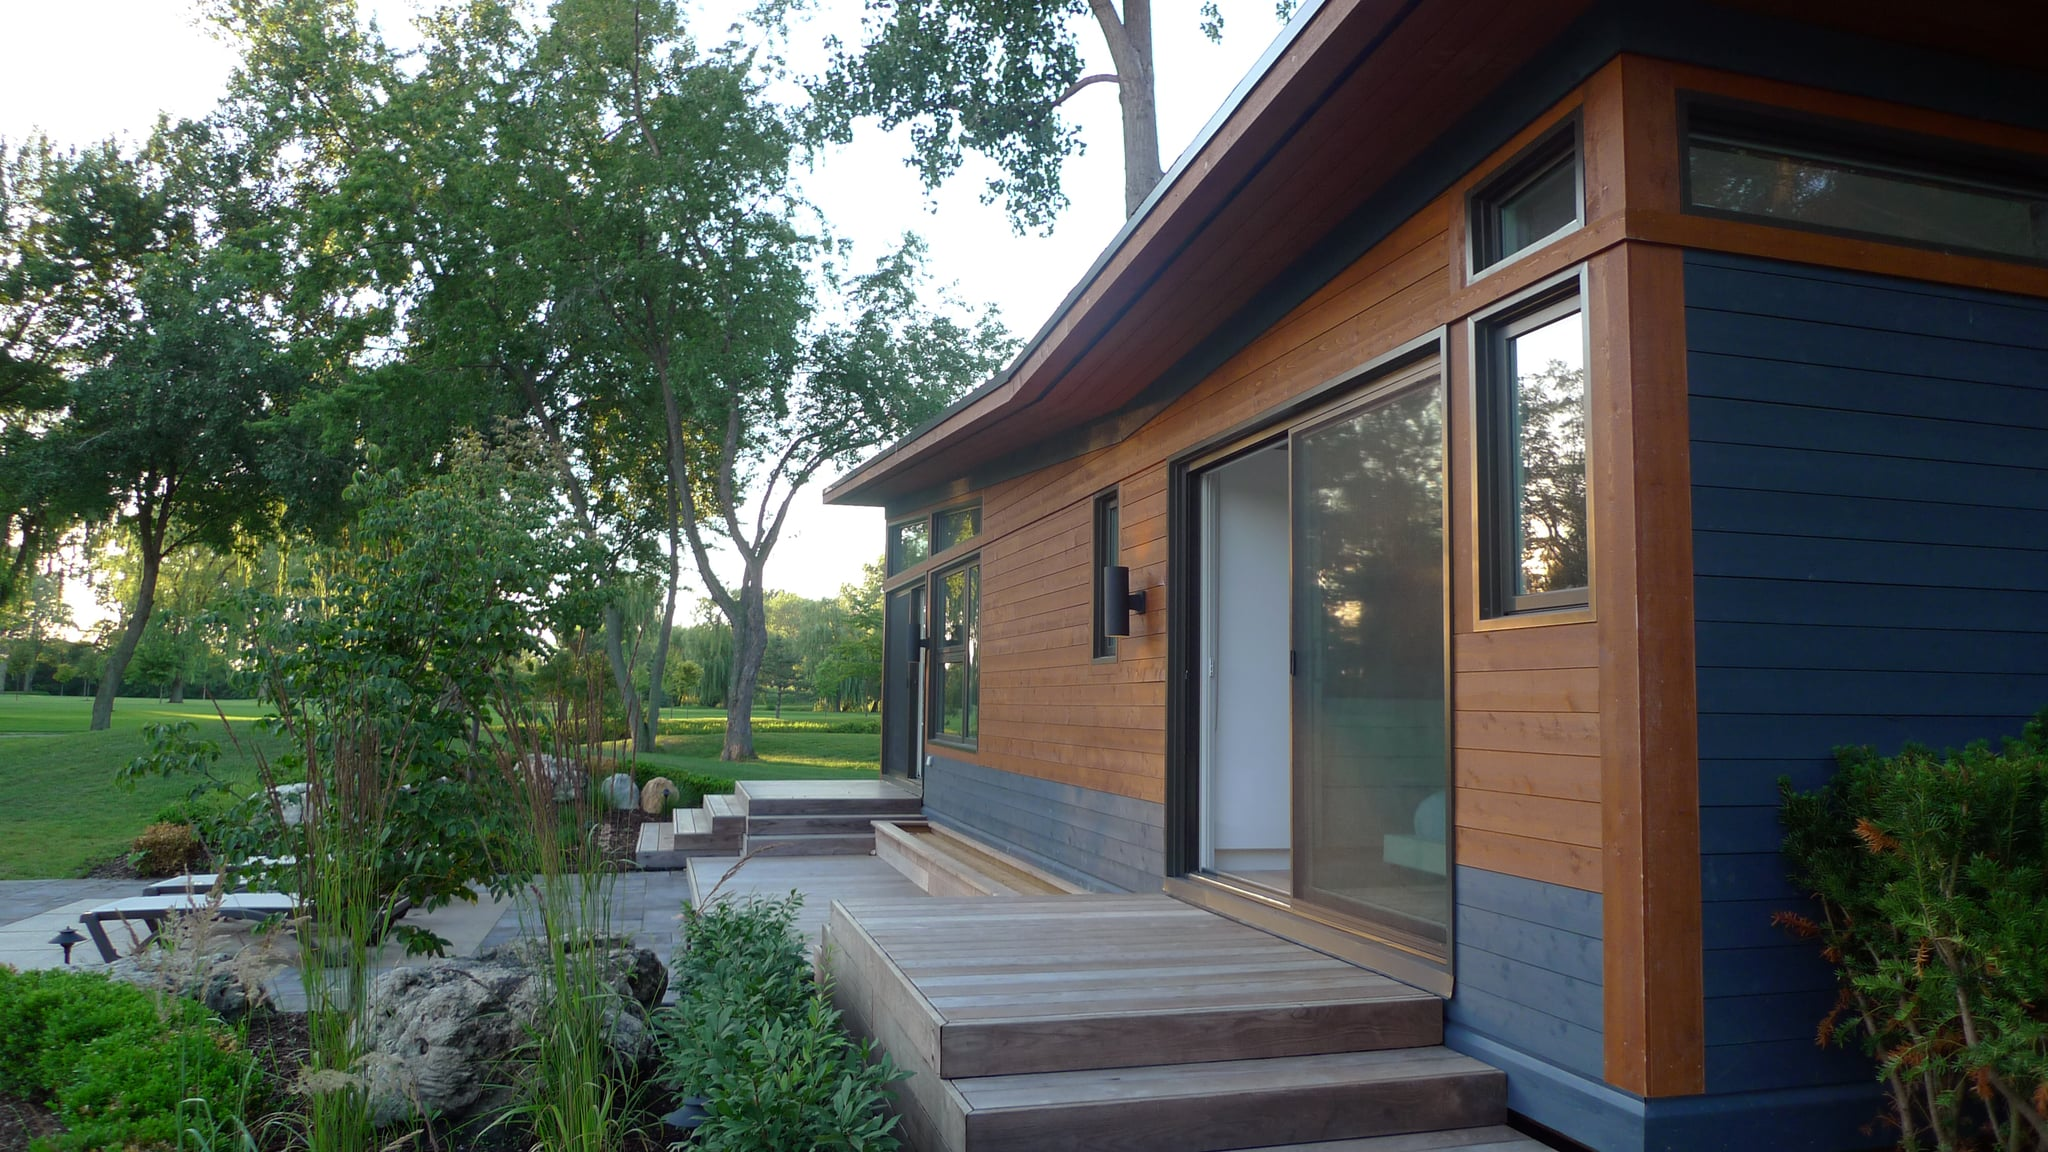 """Noted as """"one of the best modular prefab homes on the market today,"""" Altius Architecture's Solo Prefab House boasts beautiful, modern interiors and total layout customizability. Whether you're lusting after a tiny home with less than 400 square feet or something a bit more roomy, this home can meet your needs."""